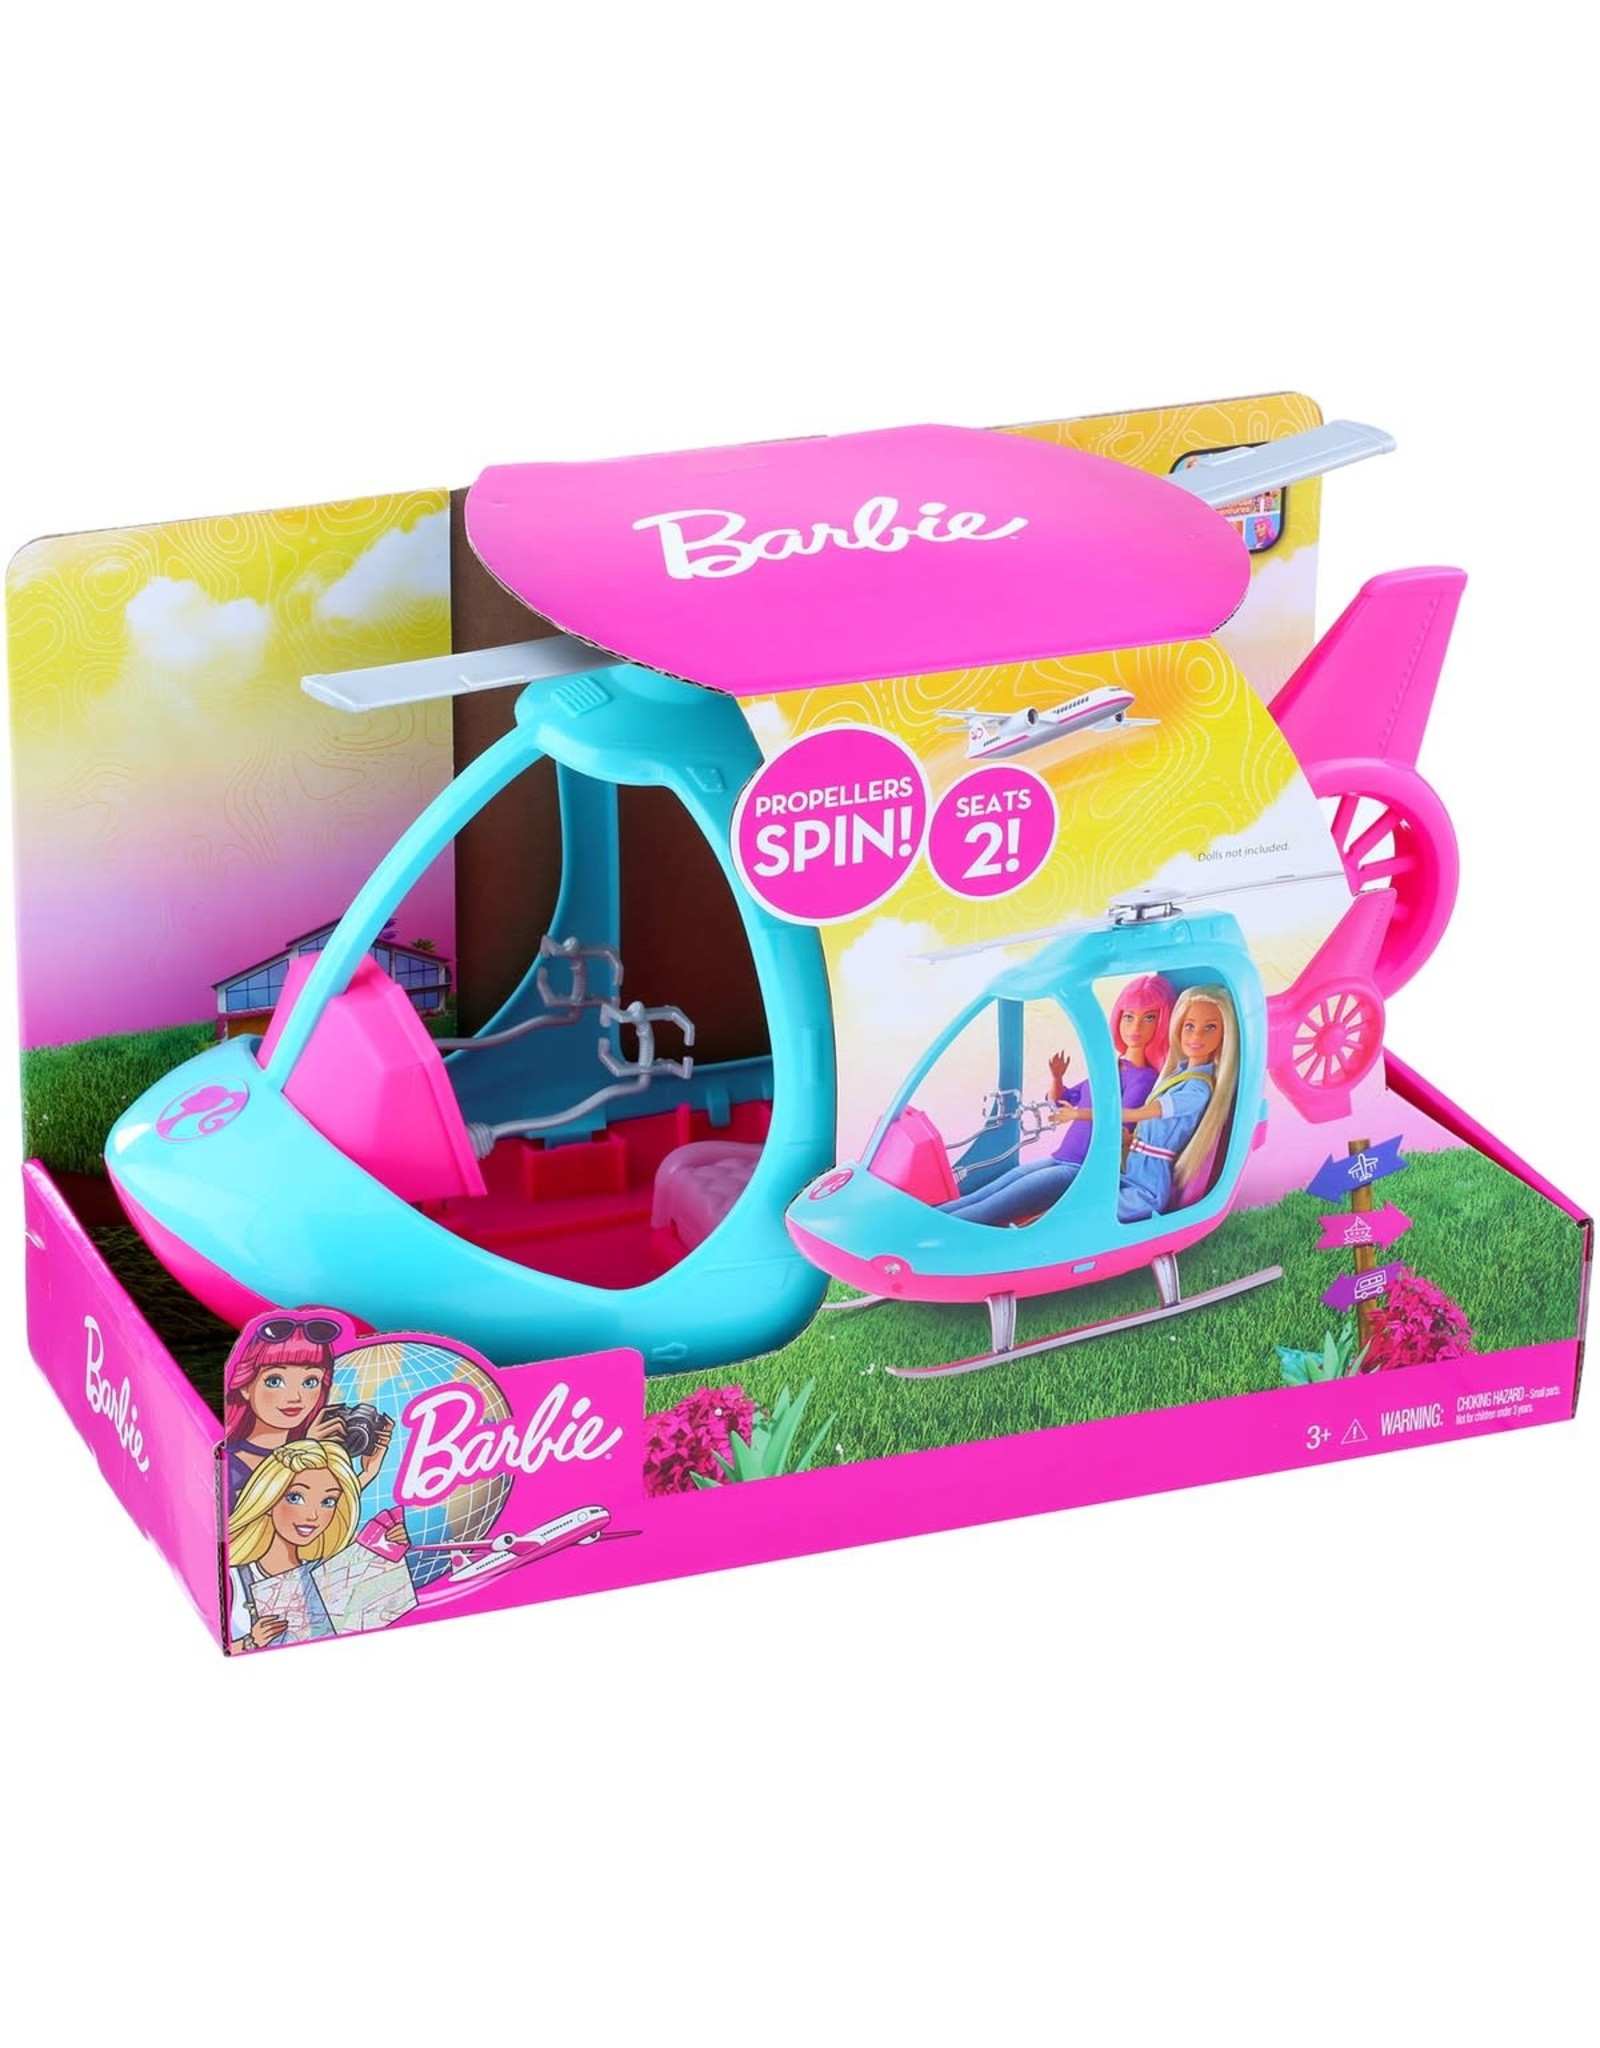 Barbie Barbie Helicopter